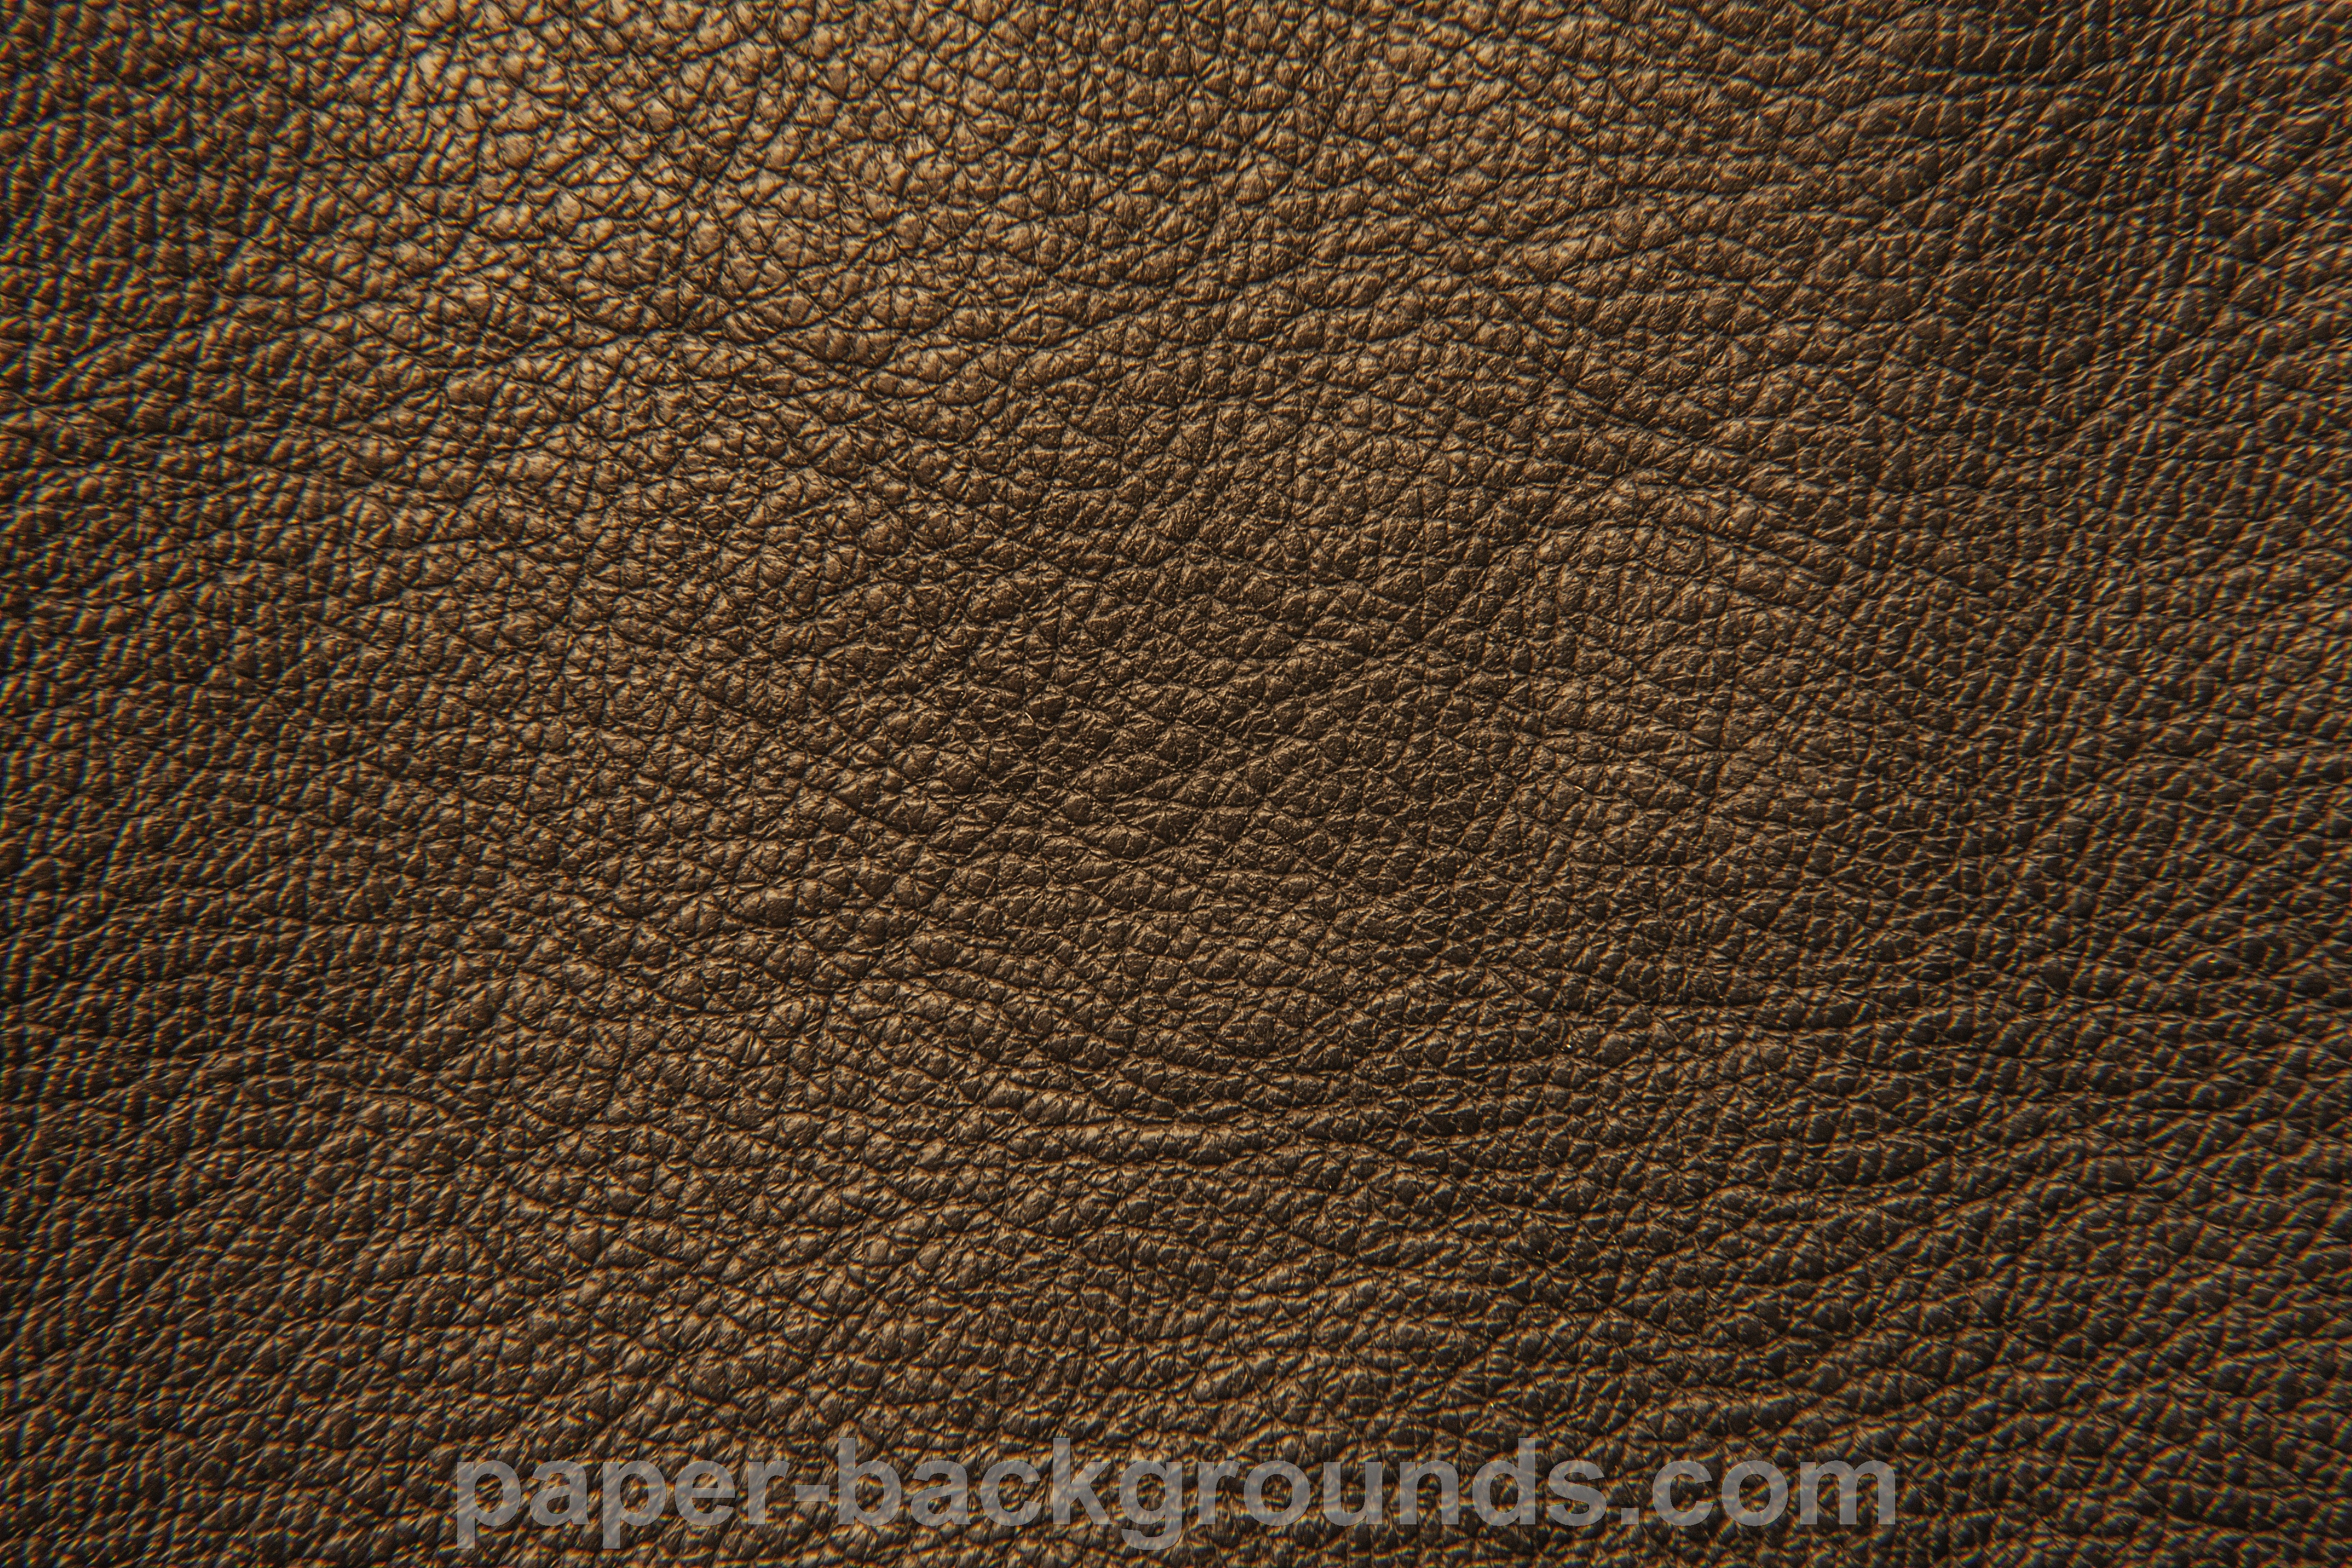 leather texture wallpaper - photo #28